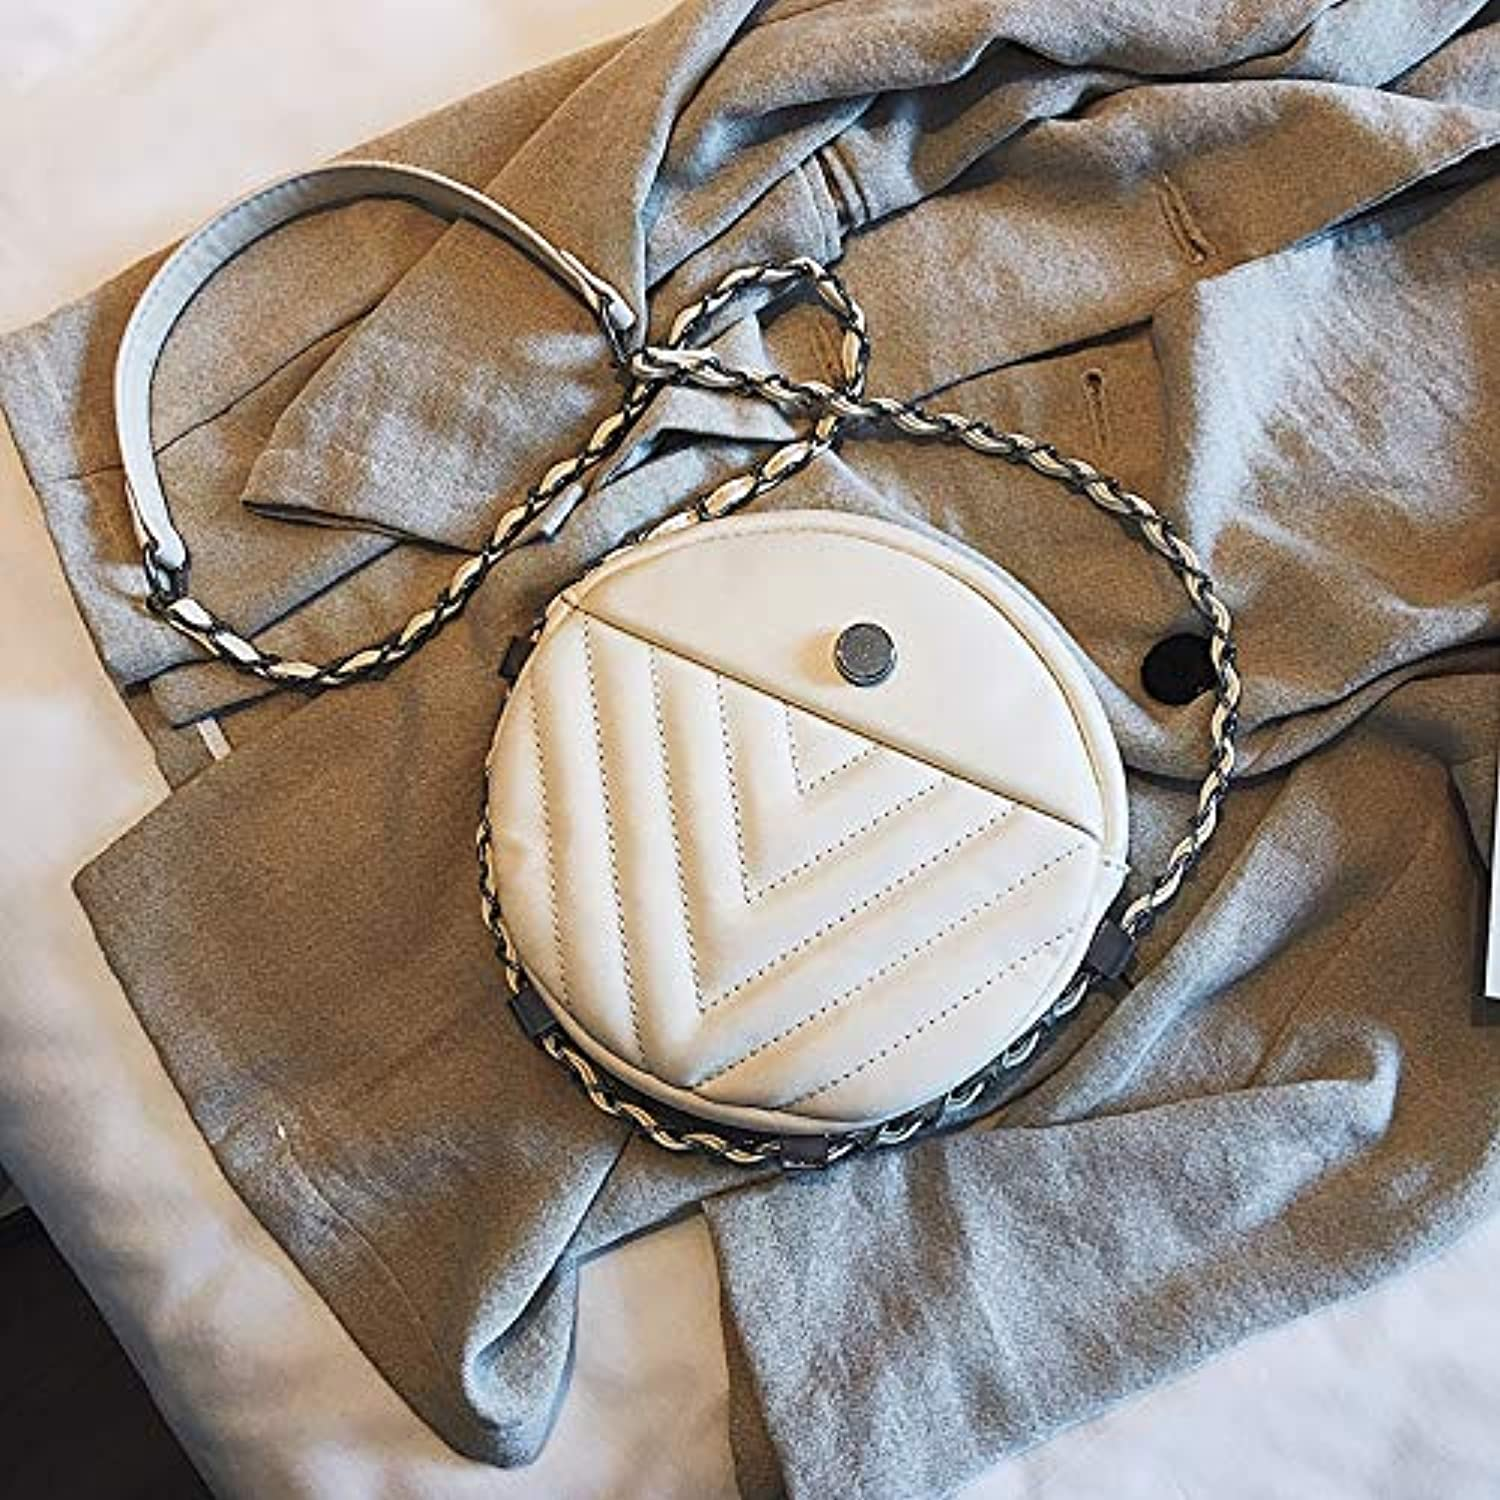 WANGZHAO Women's Bags, Single Bag, Satchel, Round, and Simple Fashion Rhombus Chain.